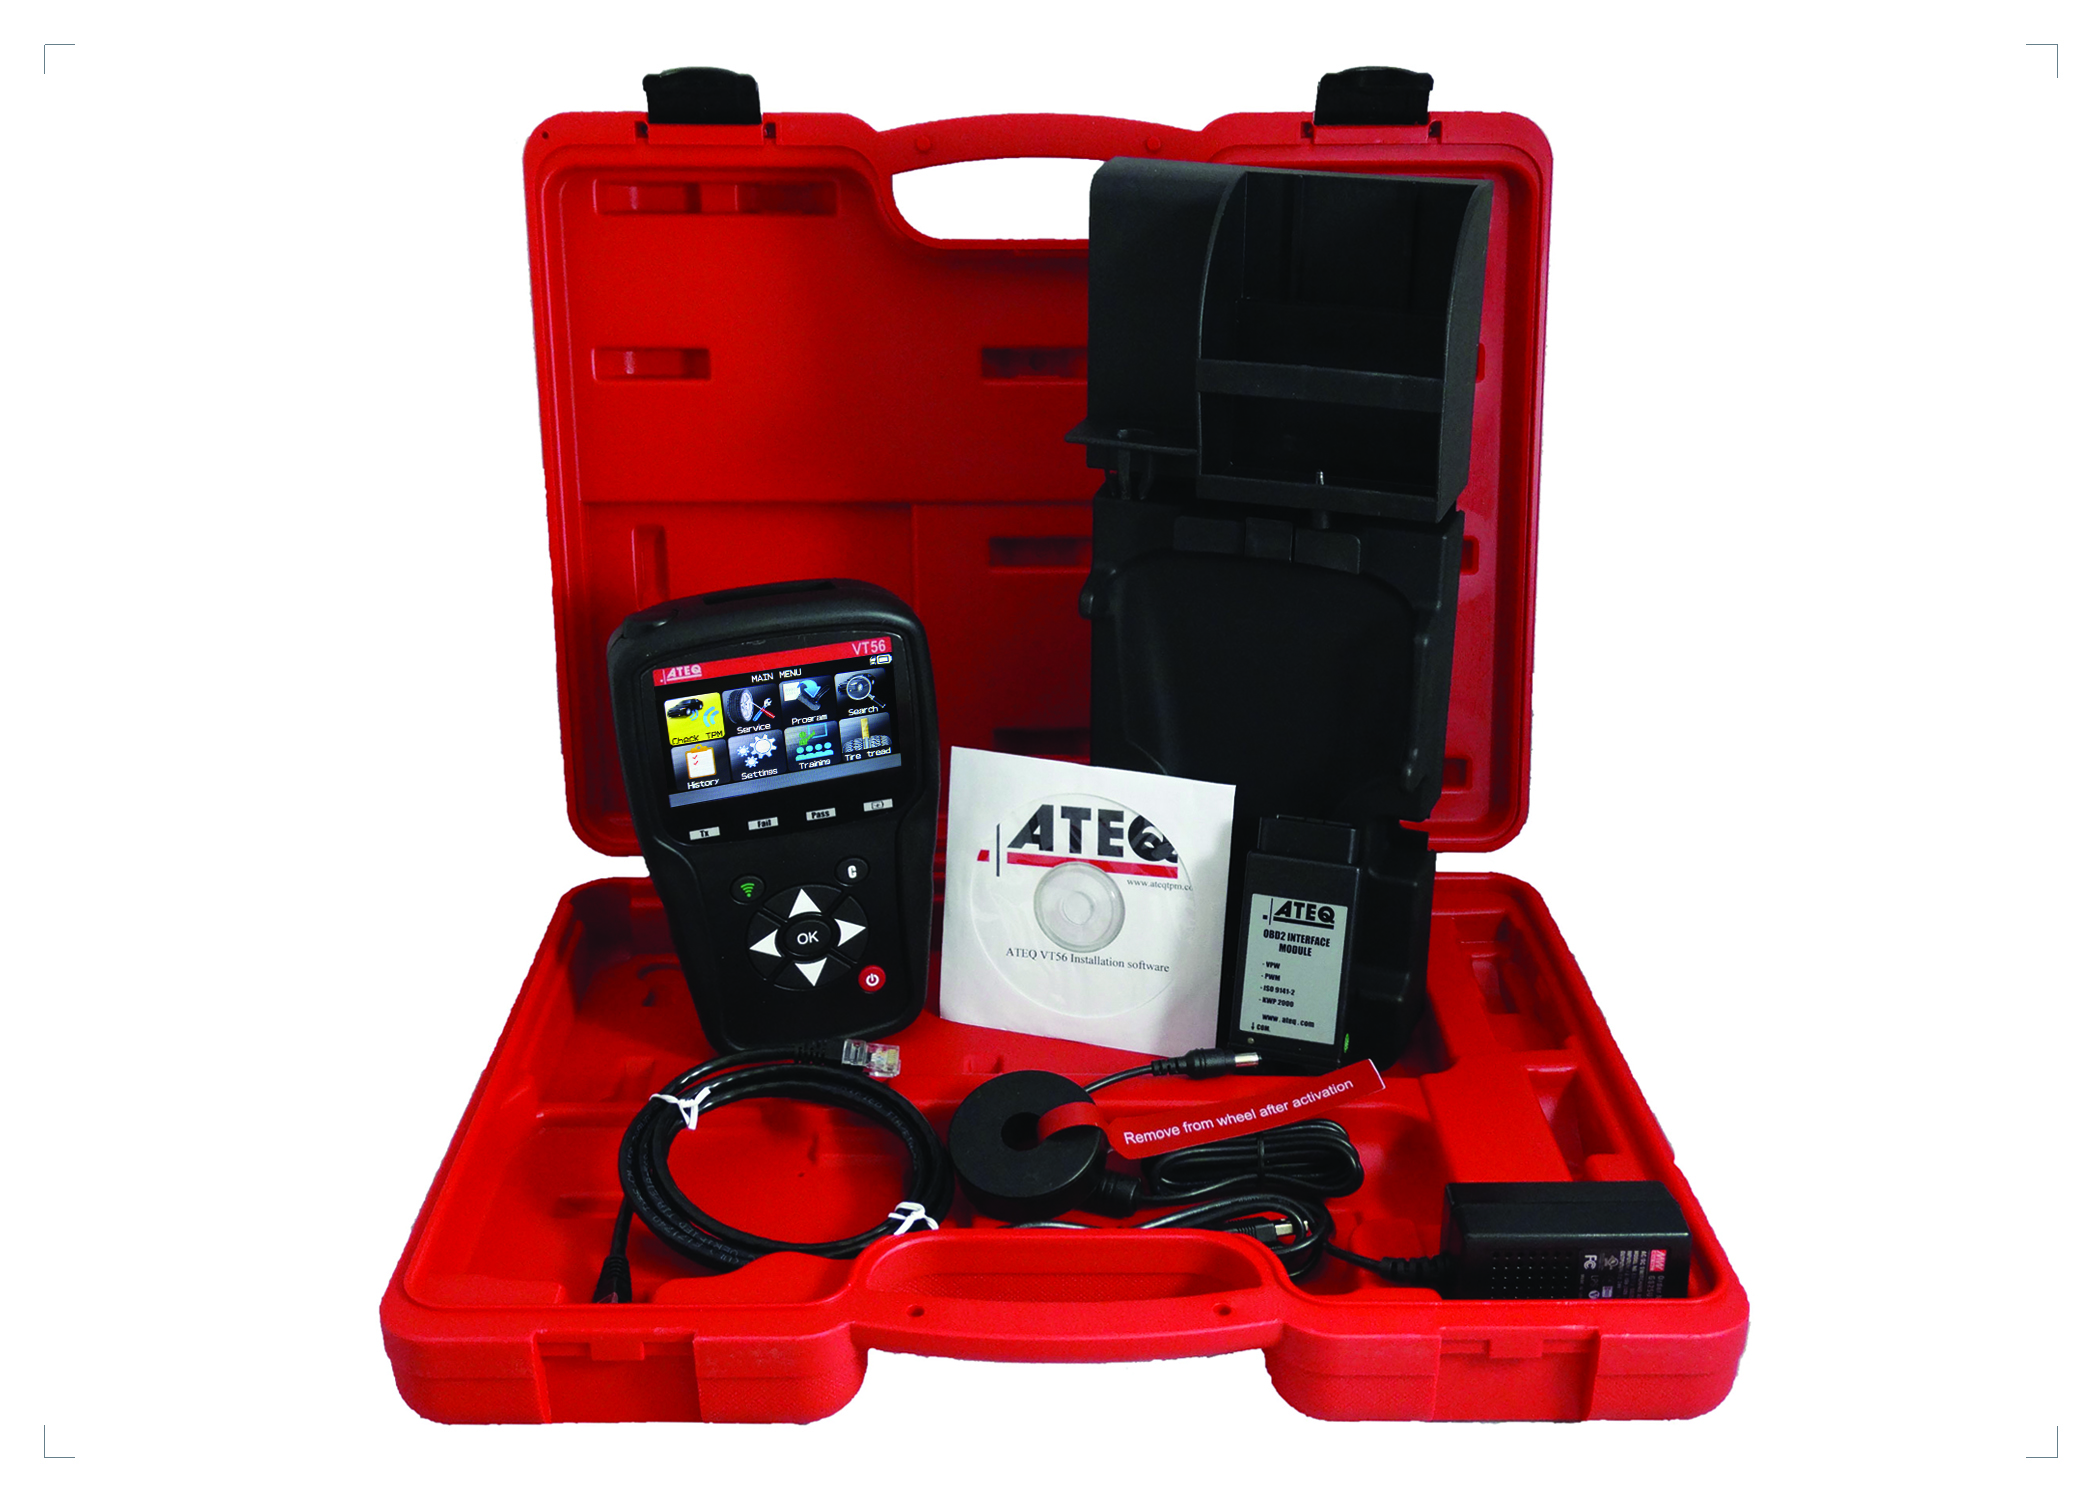 ATEQ VT56-PROMO TPMS Tool with Intuitive Actions